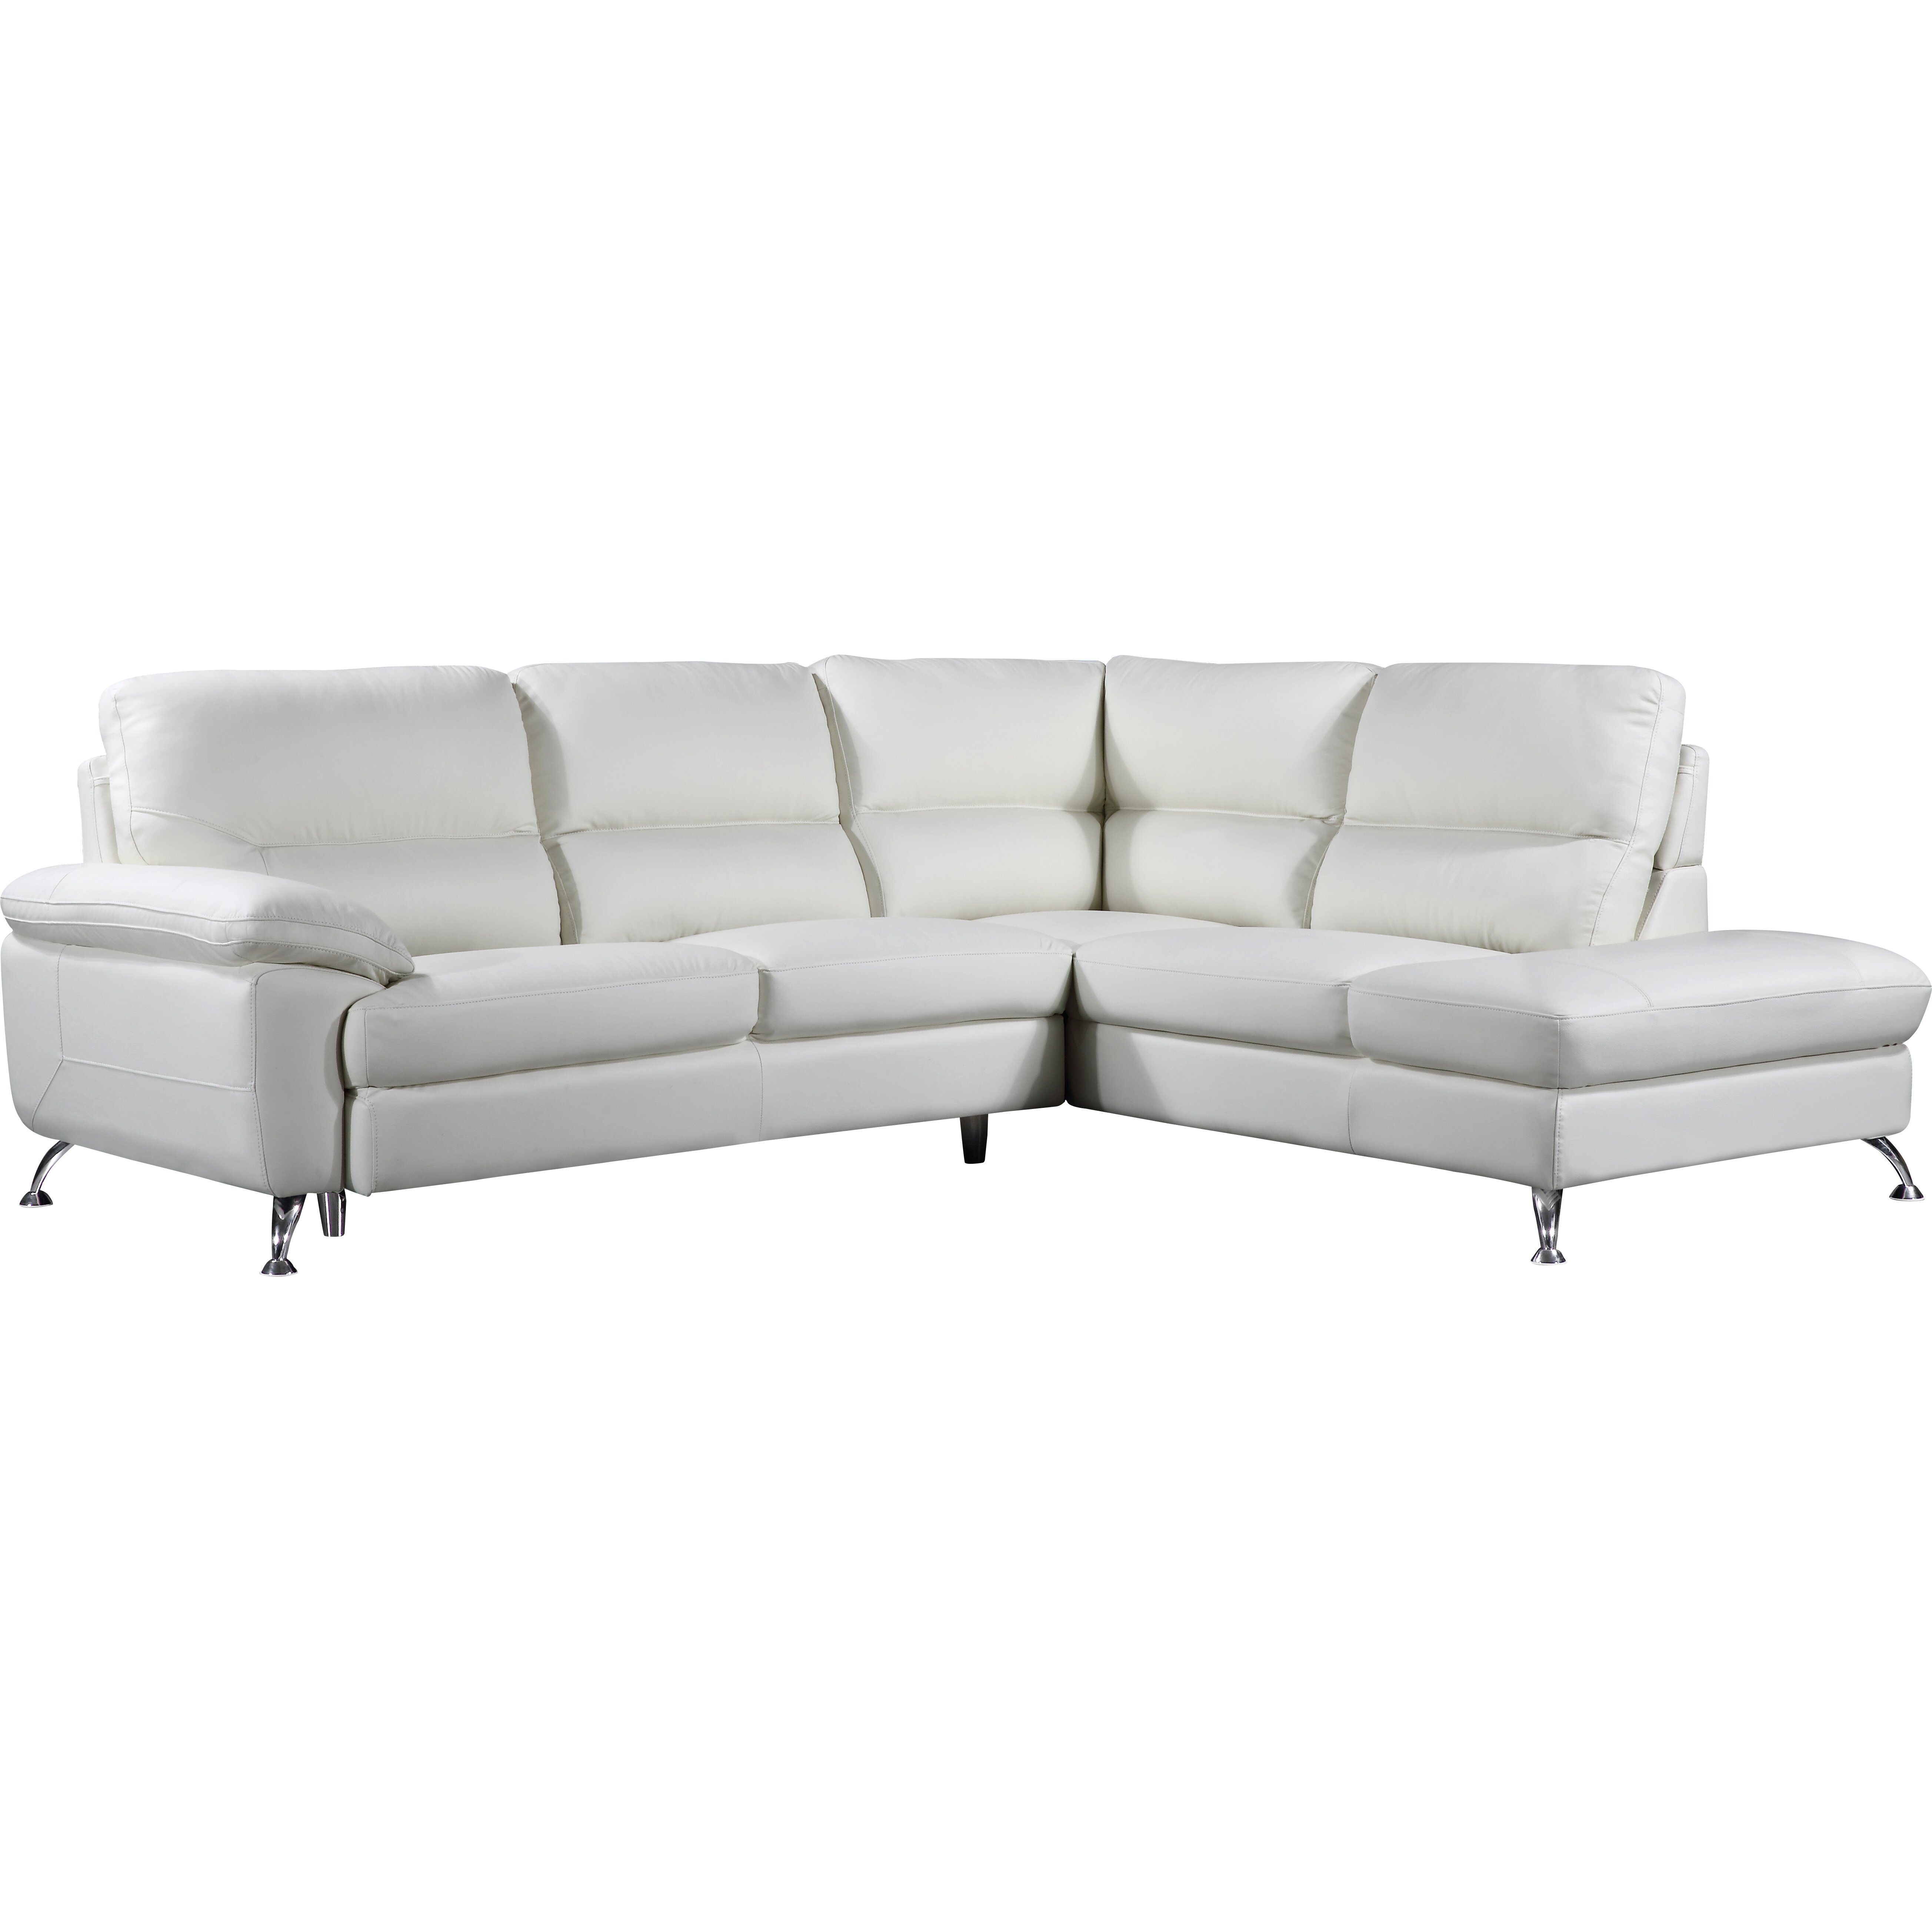 Cortesi home miami sectional wayfair for Genuine leather sectional sofa with chaise